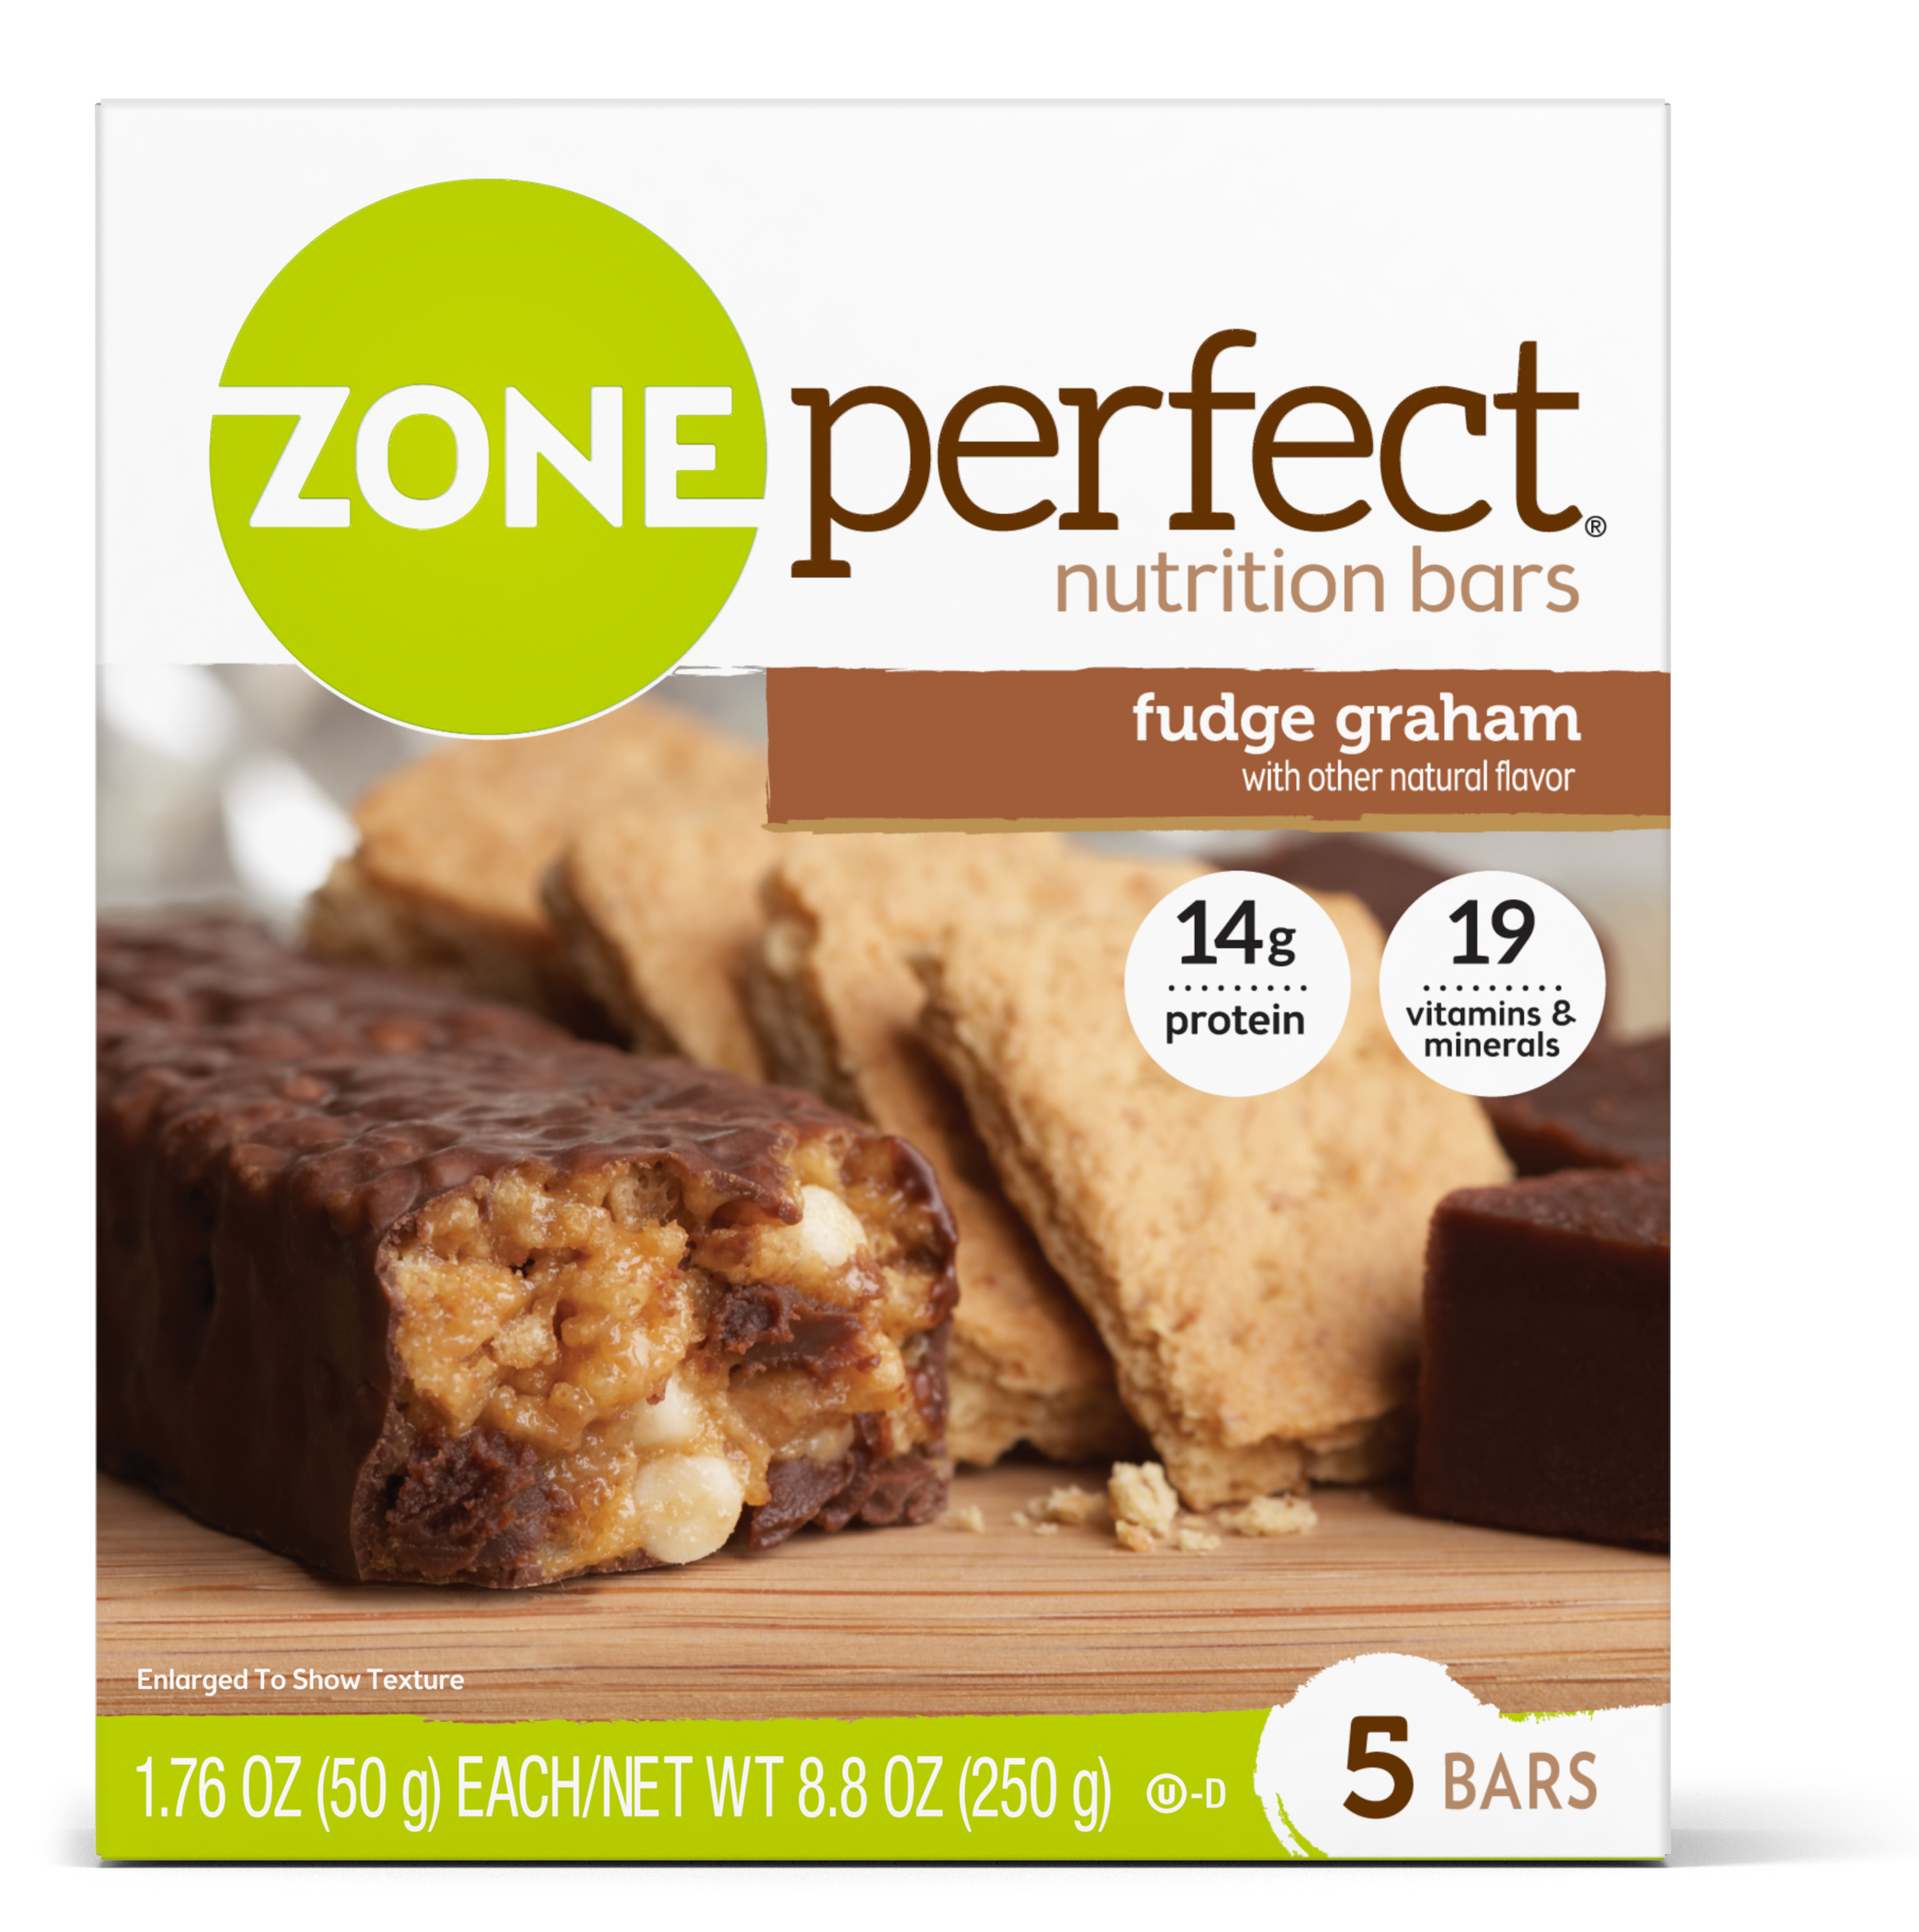 ZonePerfect Nutrition Bar, Fudge Graham, 14g Protein, 5 Ct